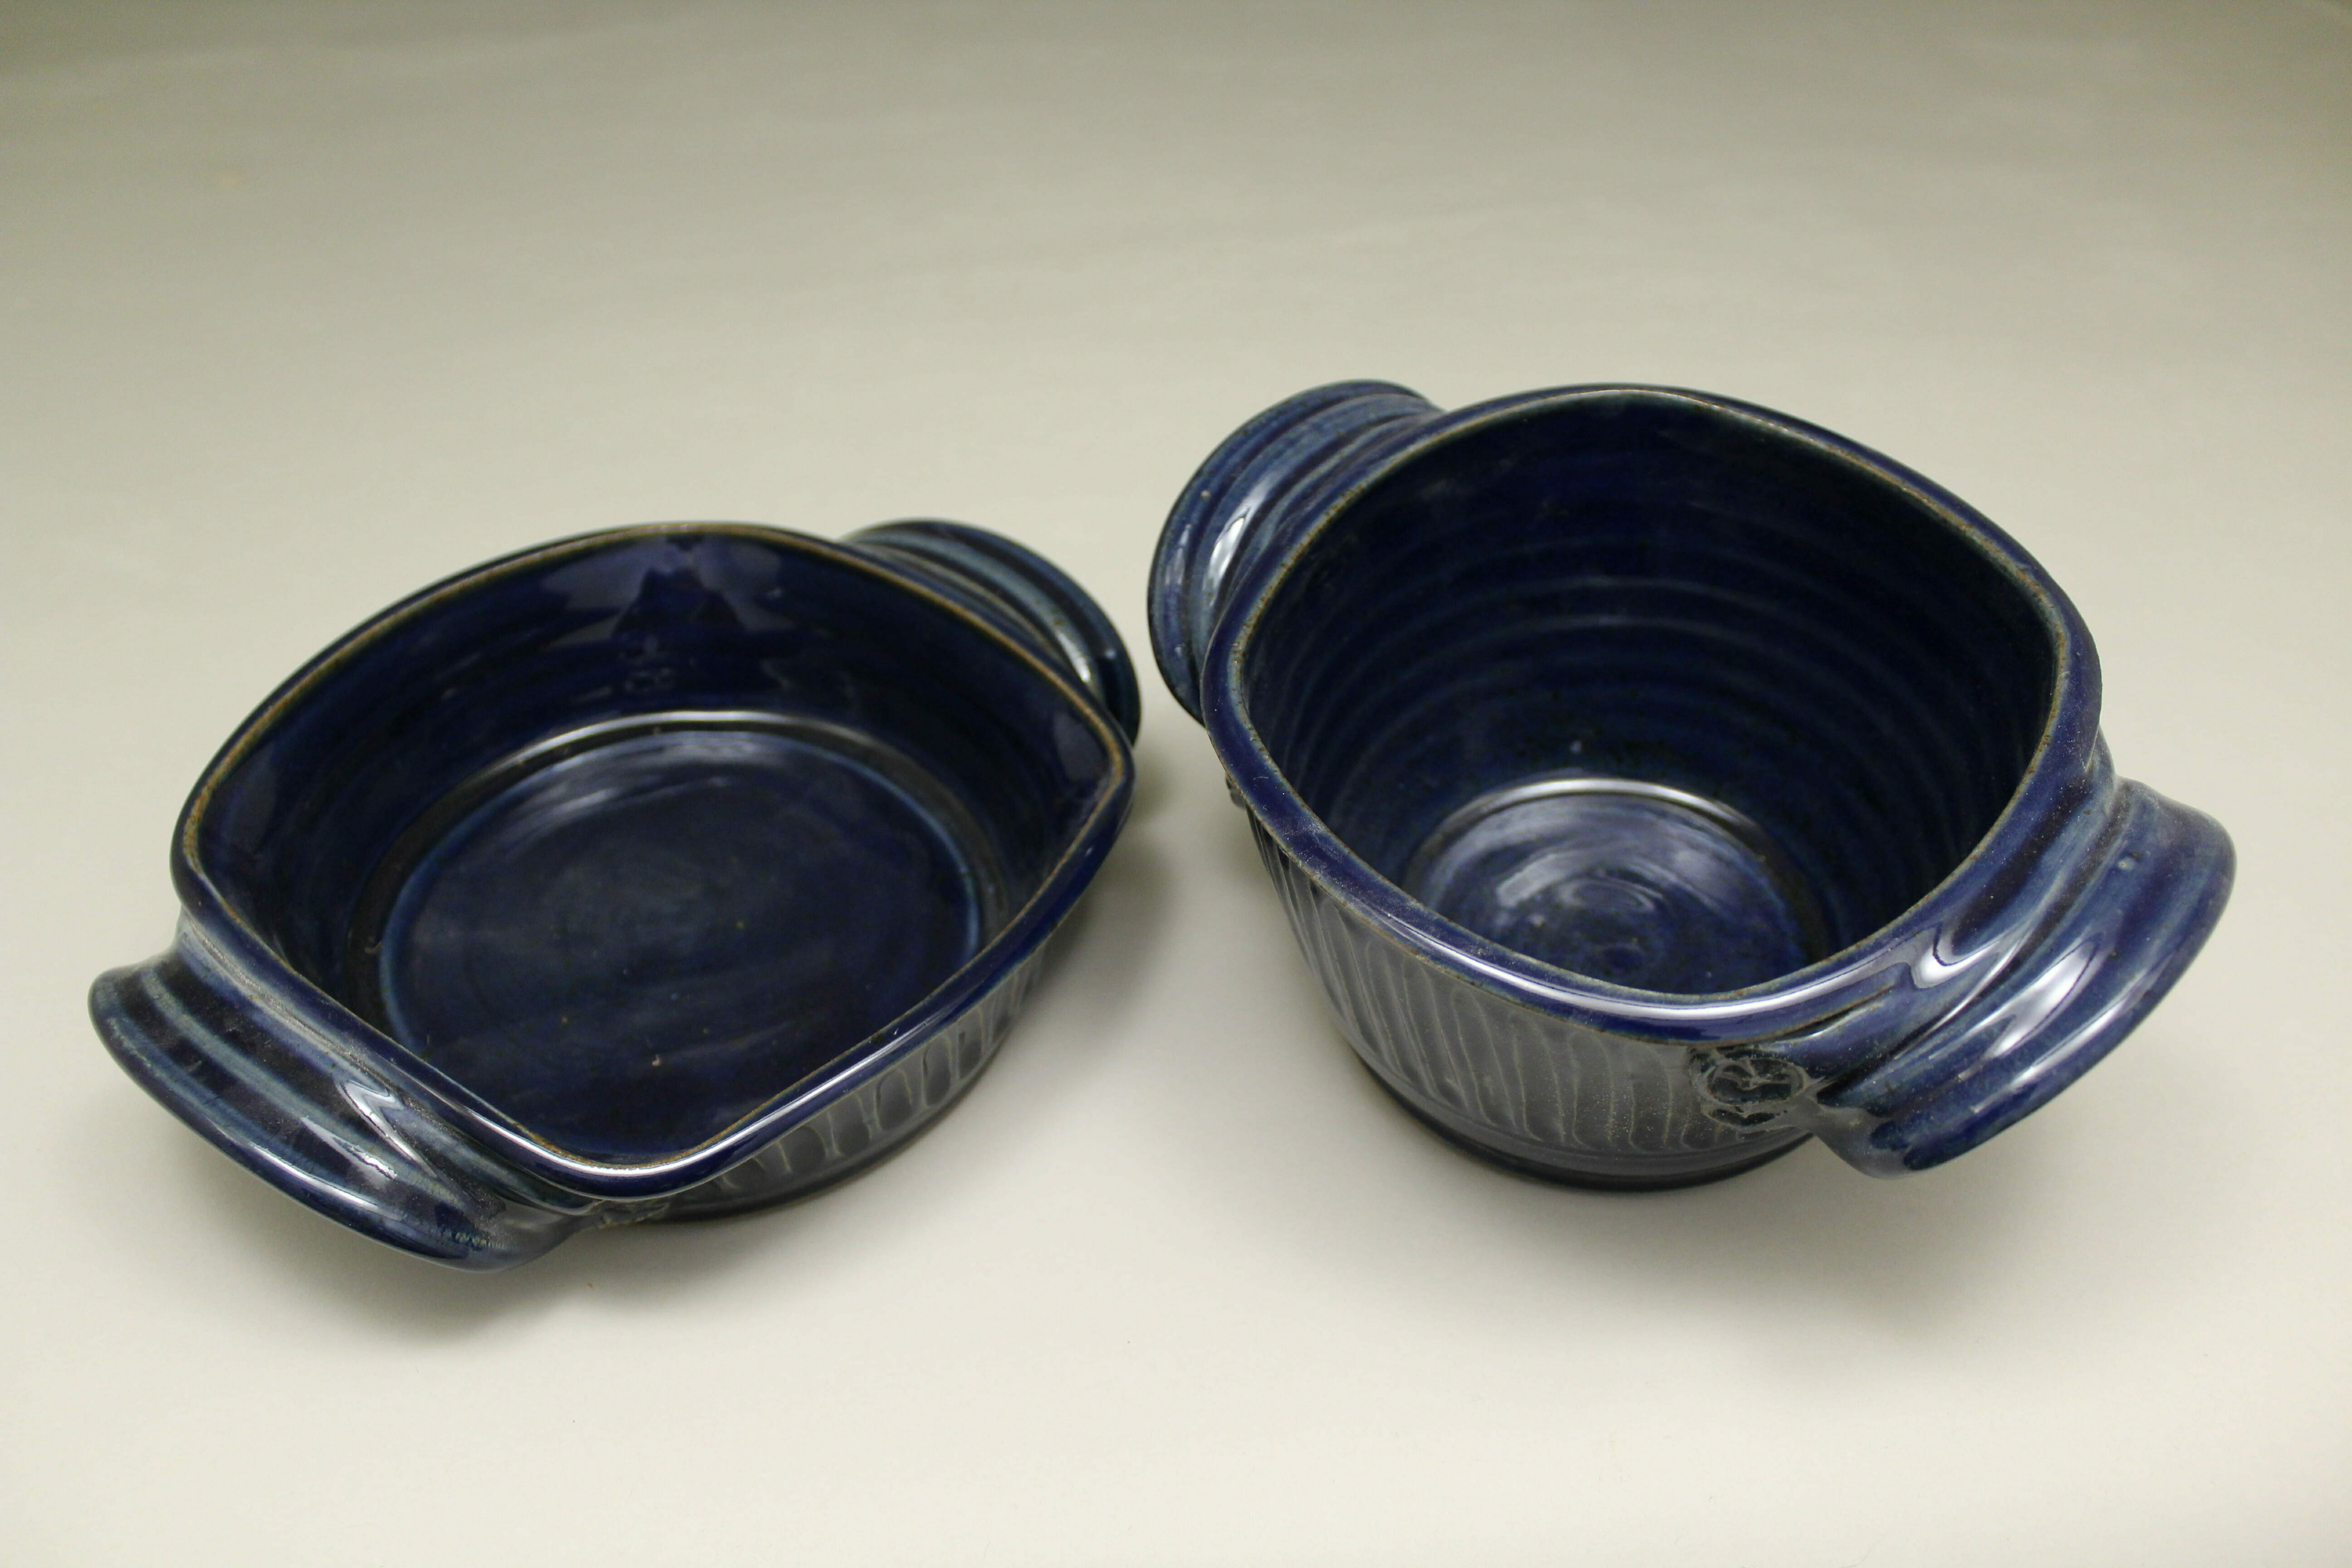 Small Open Casserole or Small Deep Open Casserole Fluted Design in Dark Blue Glaze